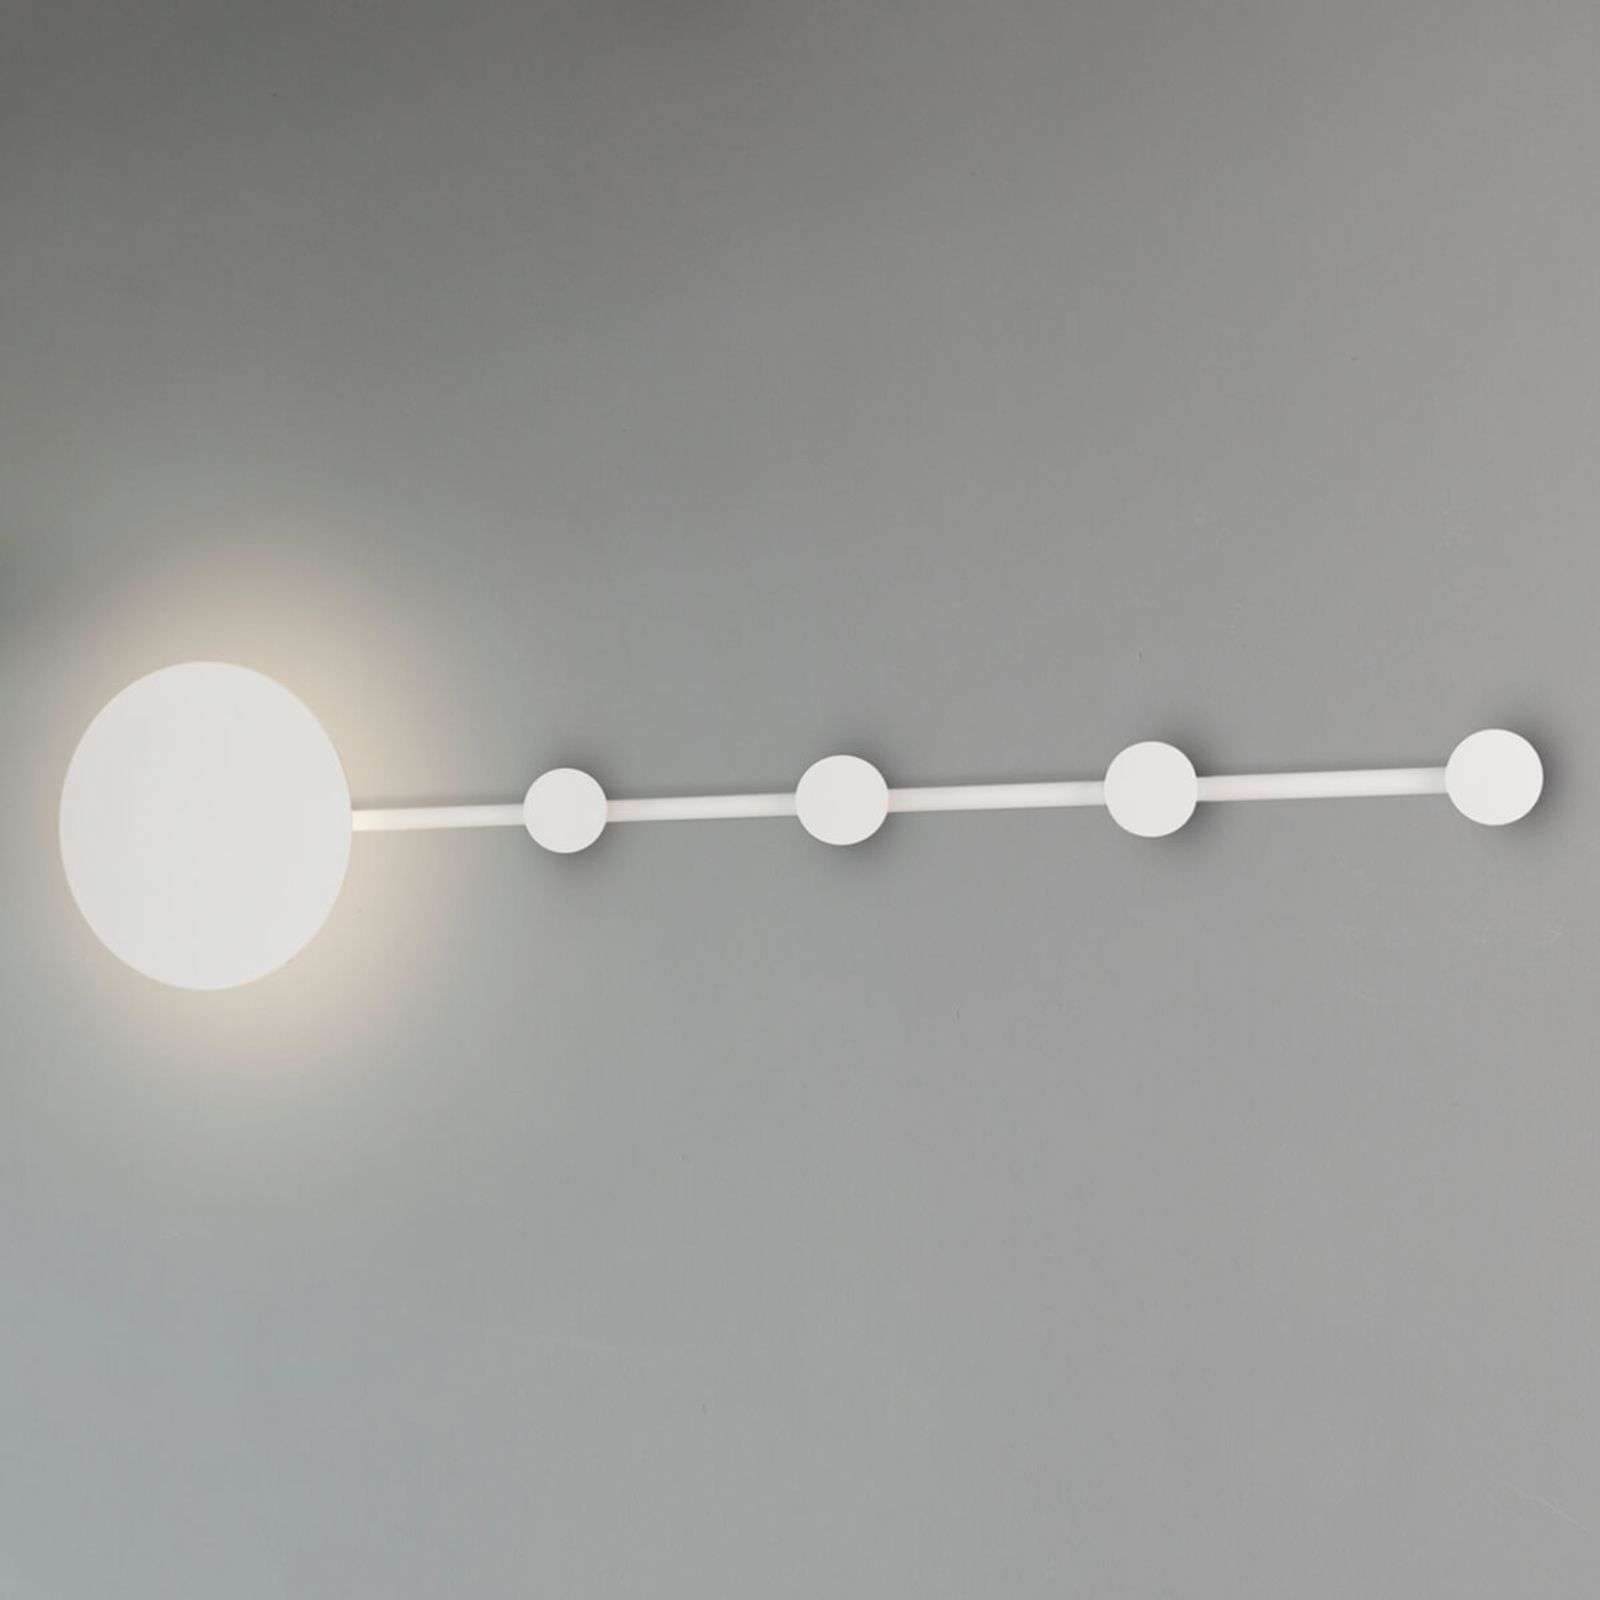 Applique murale LED Han porte-manteau, blanc